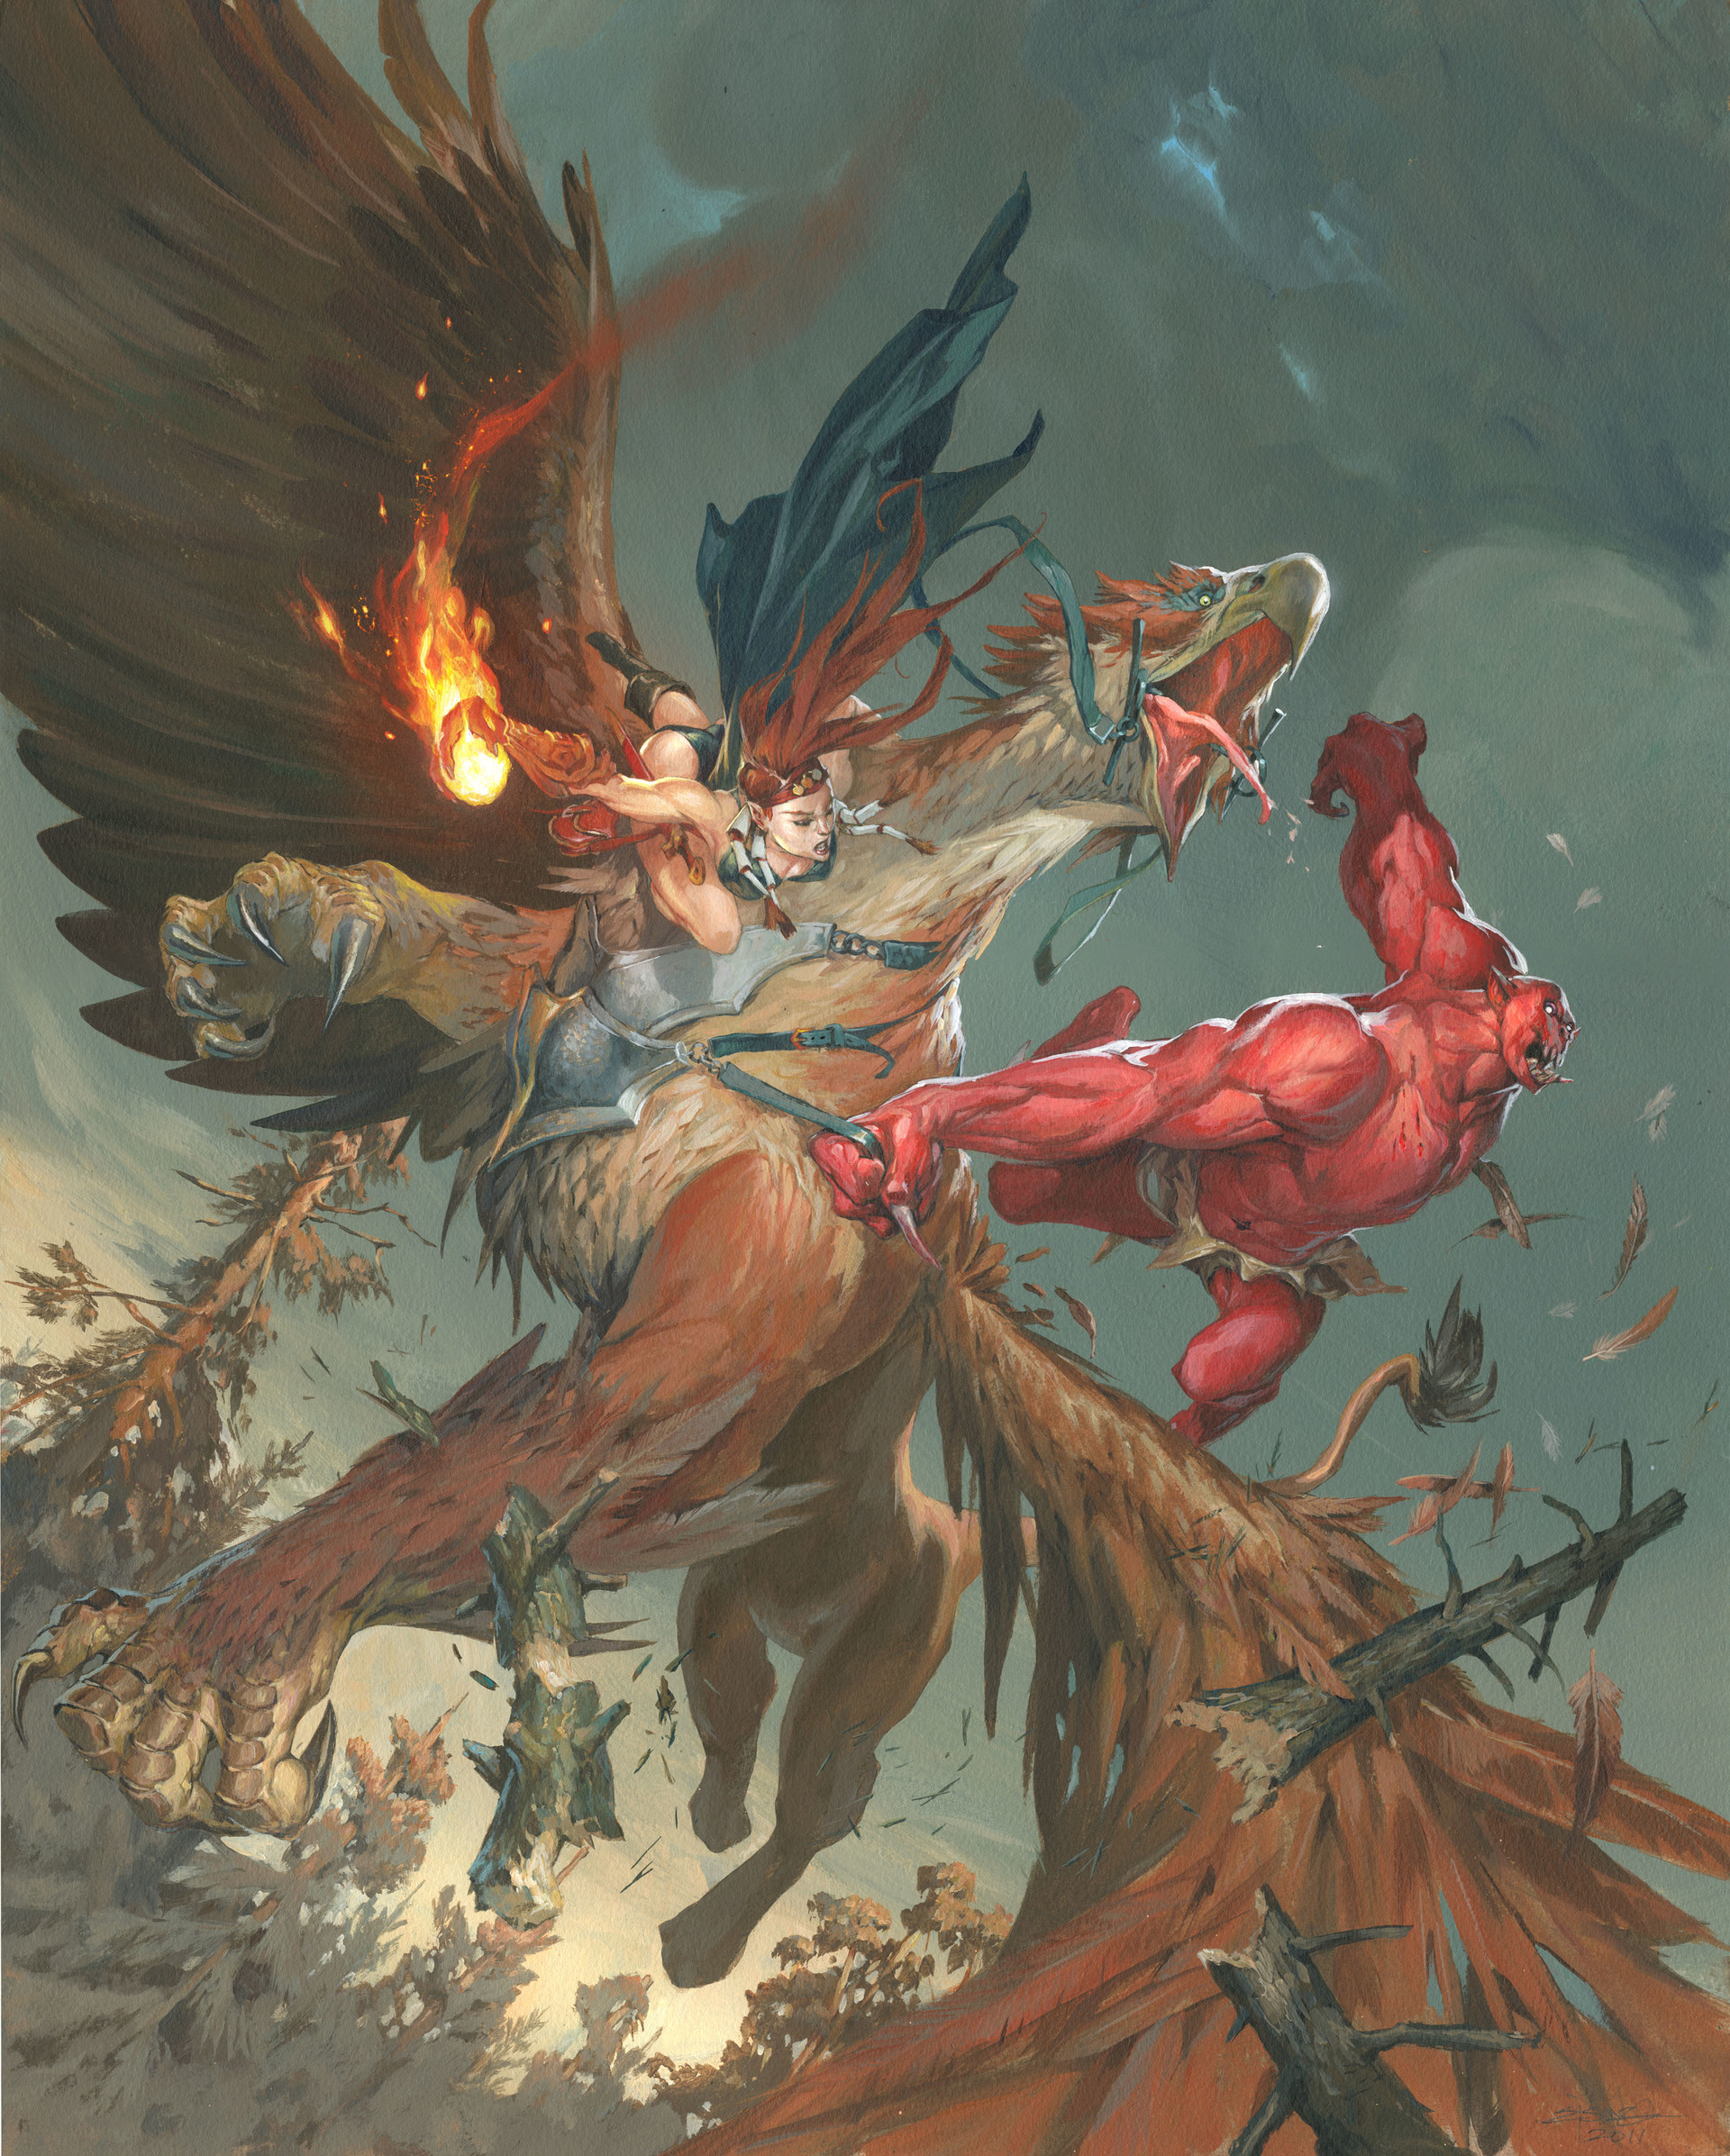 Jesper Ejsing Acrylic Painting Griffon vs Demon cover for Atari